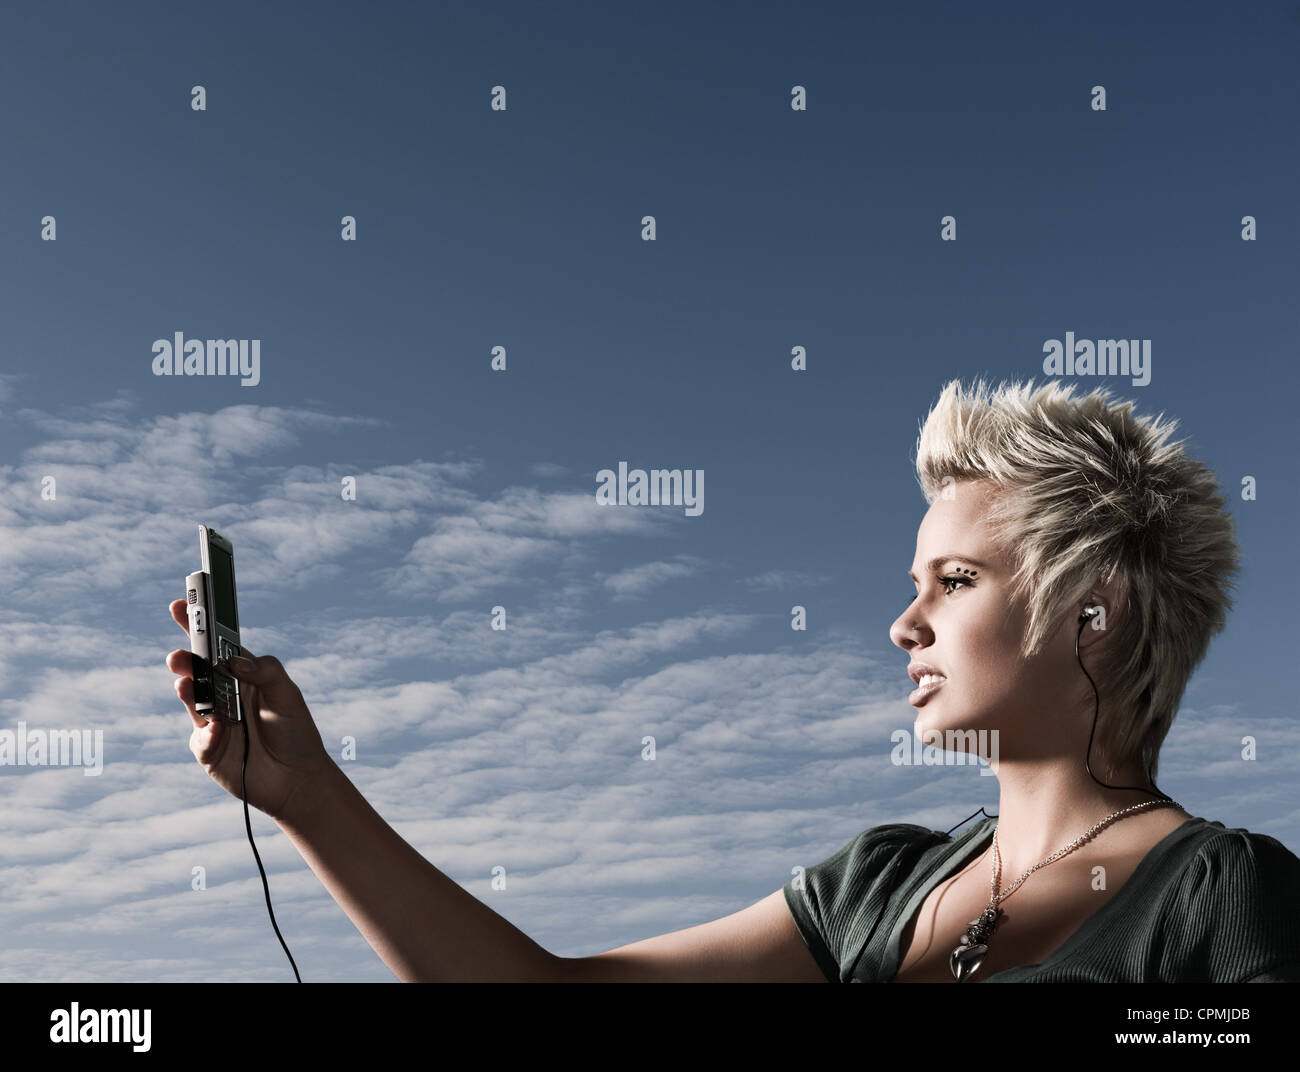 Woman looking at mobile phone, wearing headphones, backgrounded by dusk sky - Stock Image